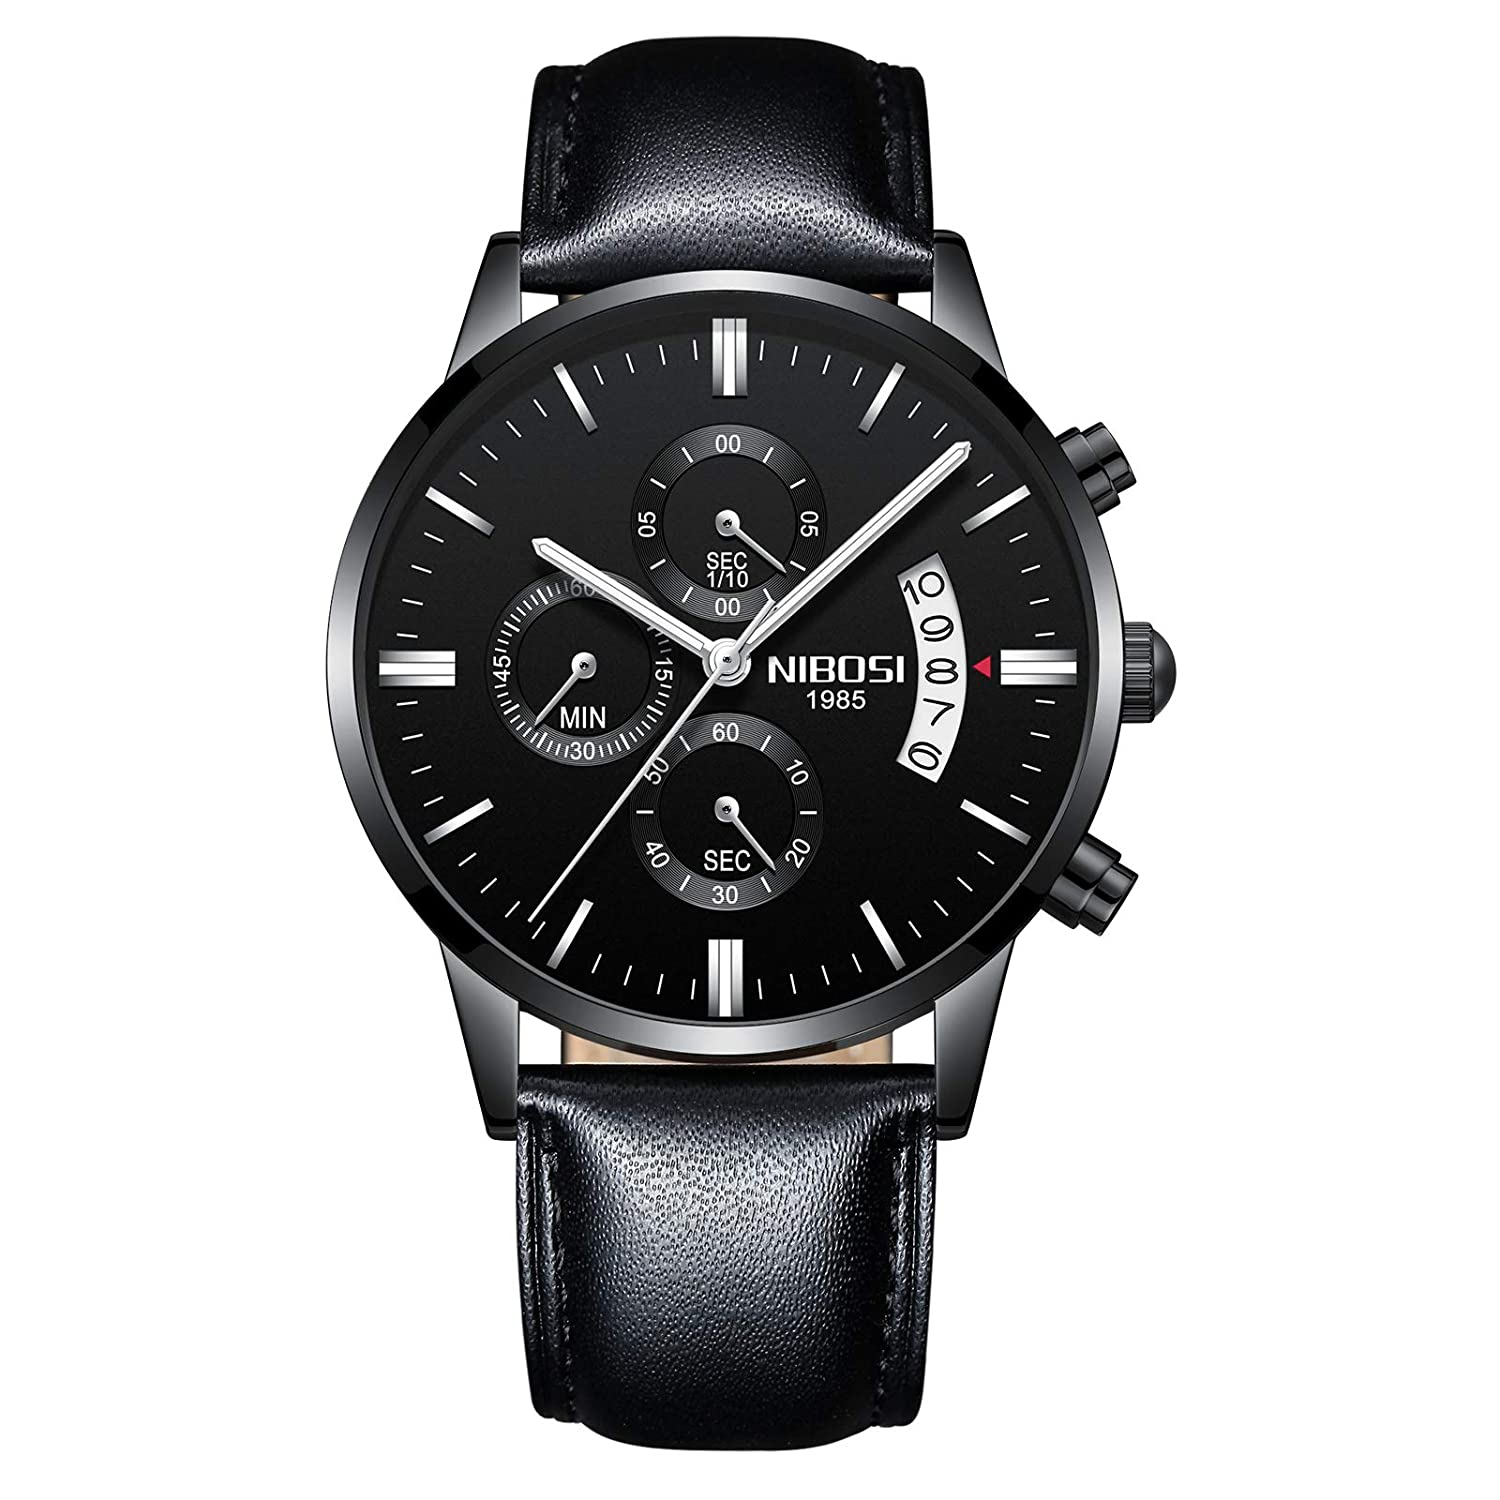 NIBOSI Best Watches For Teenage Boys in India